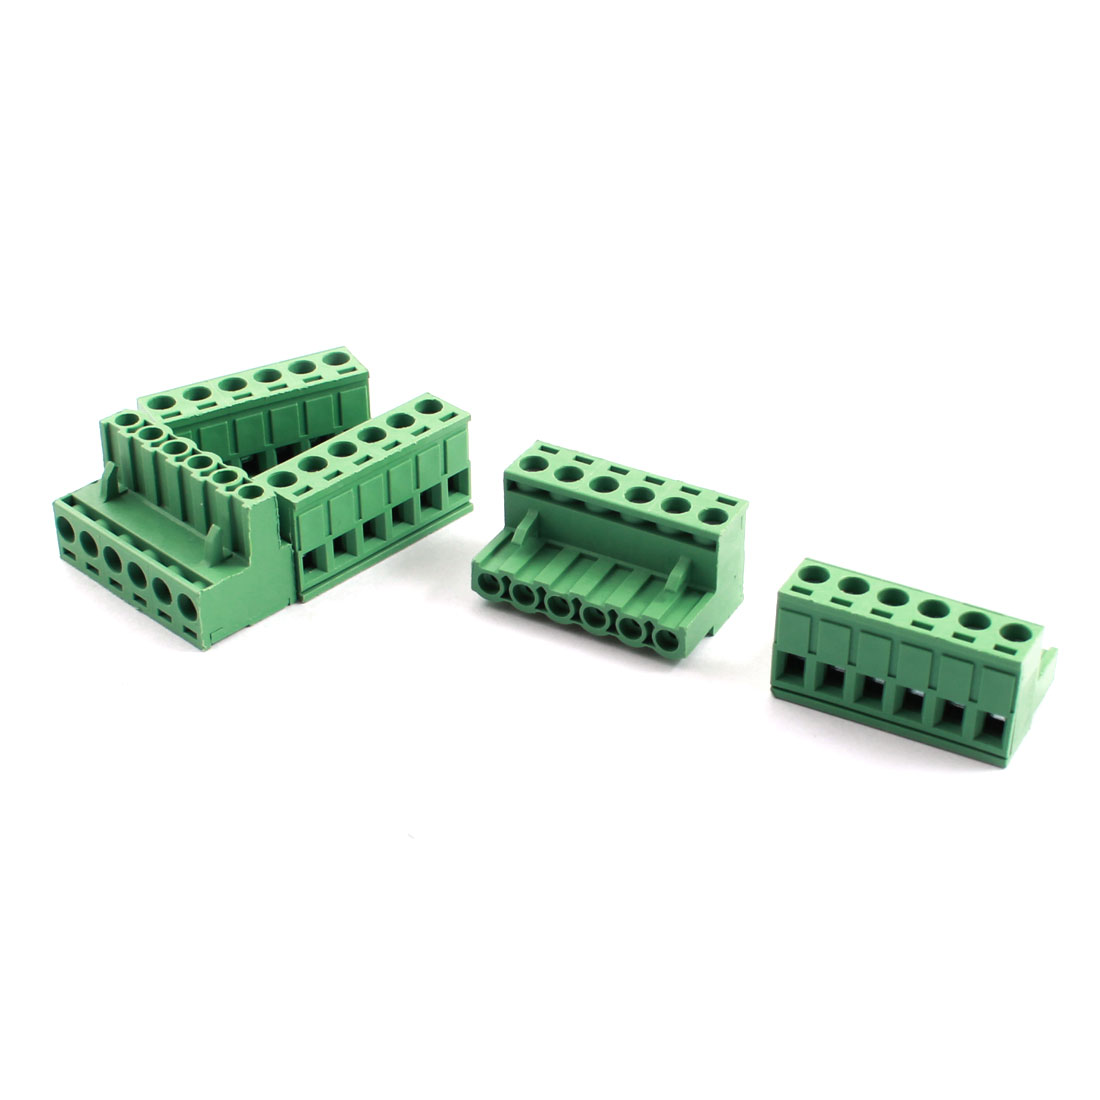 5Pcs AC300V 16A 5.08mm Pitch 14-22AWG 6-Position PCB Screw Terminal Barrier Block Connector Strip